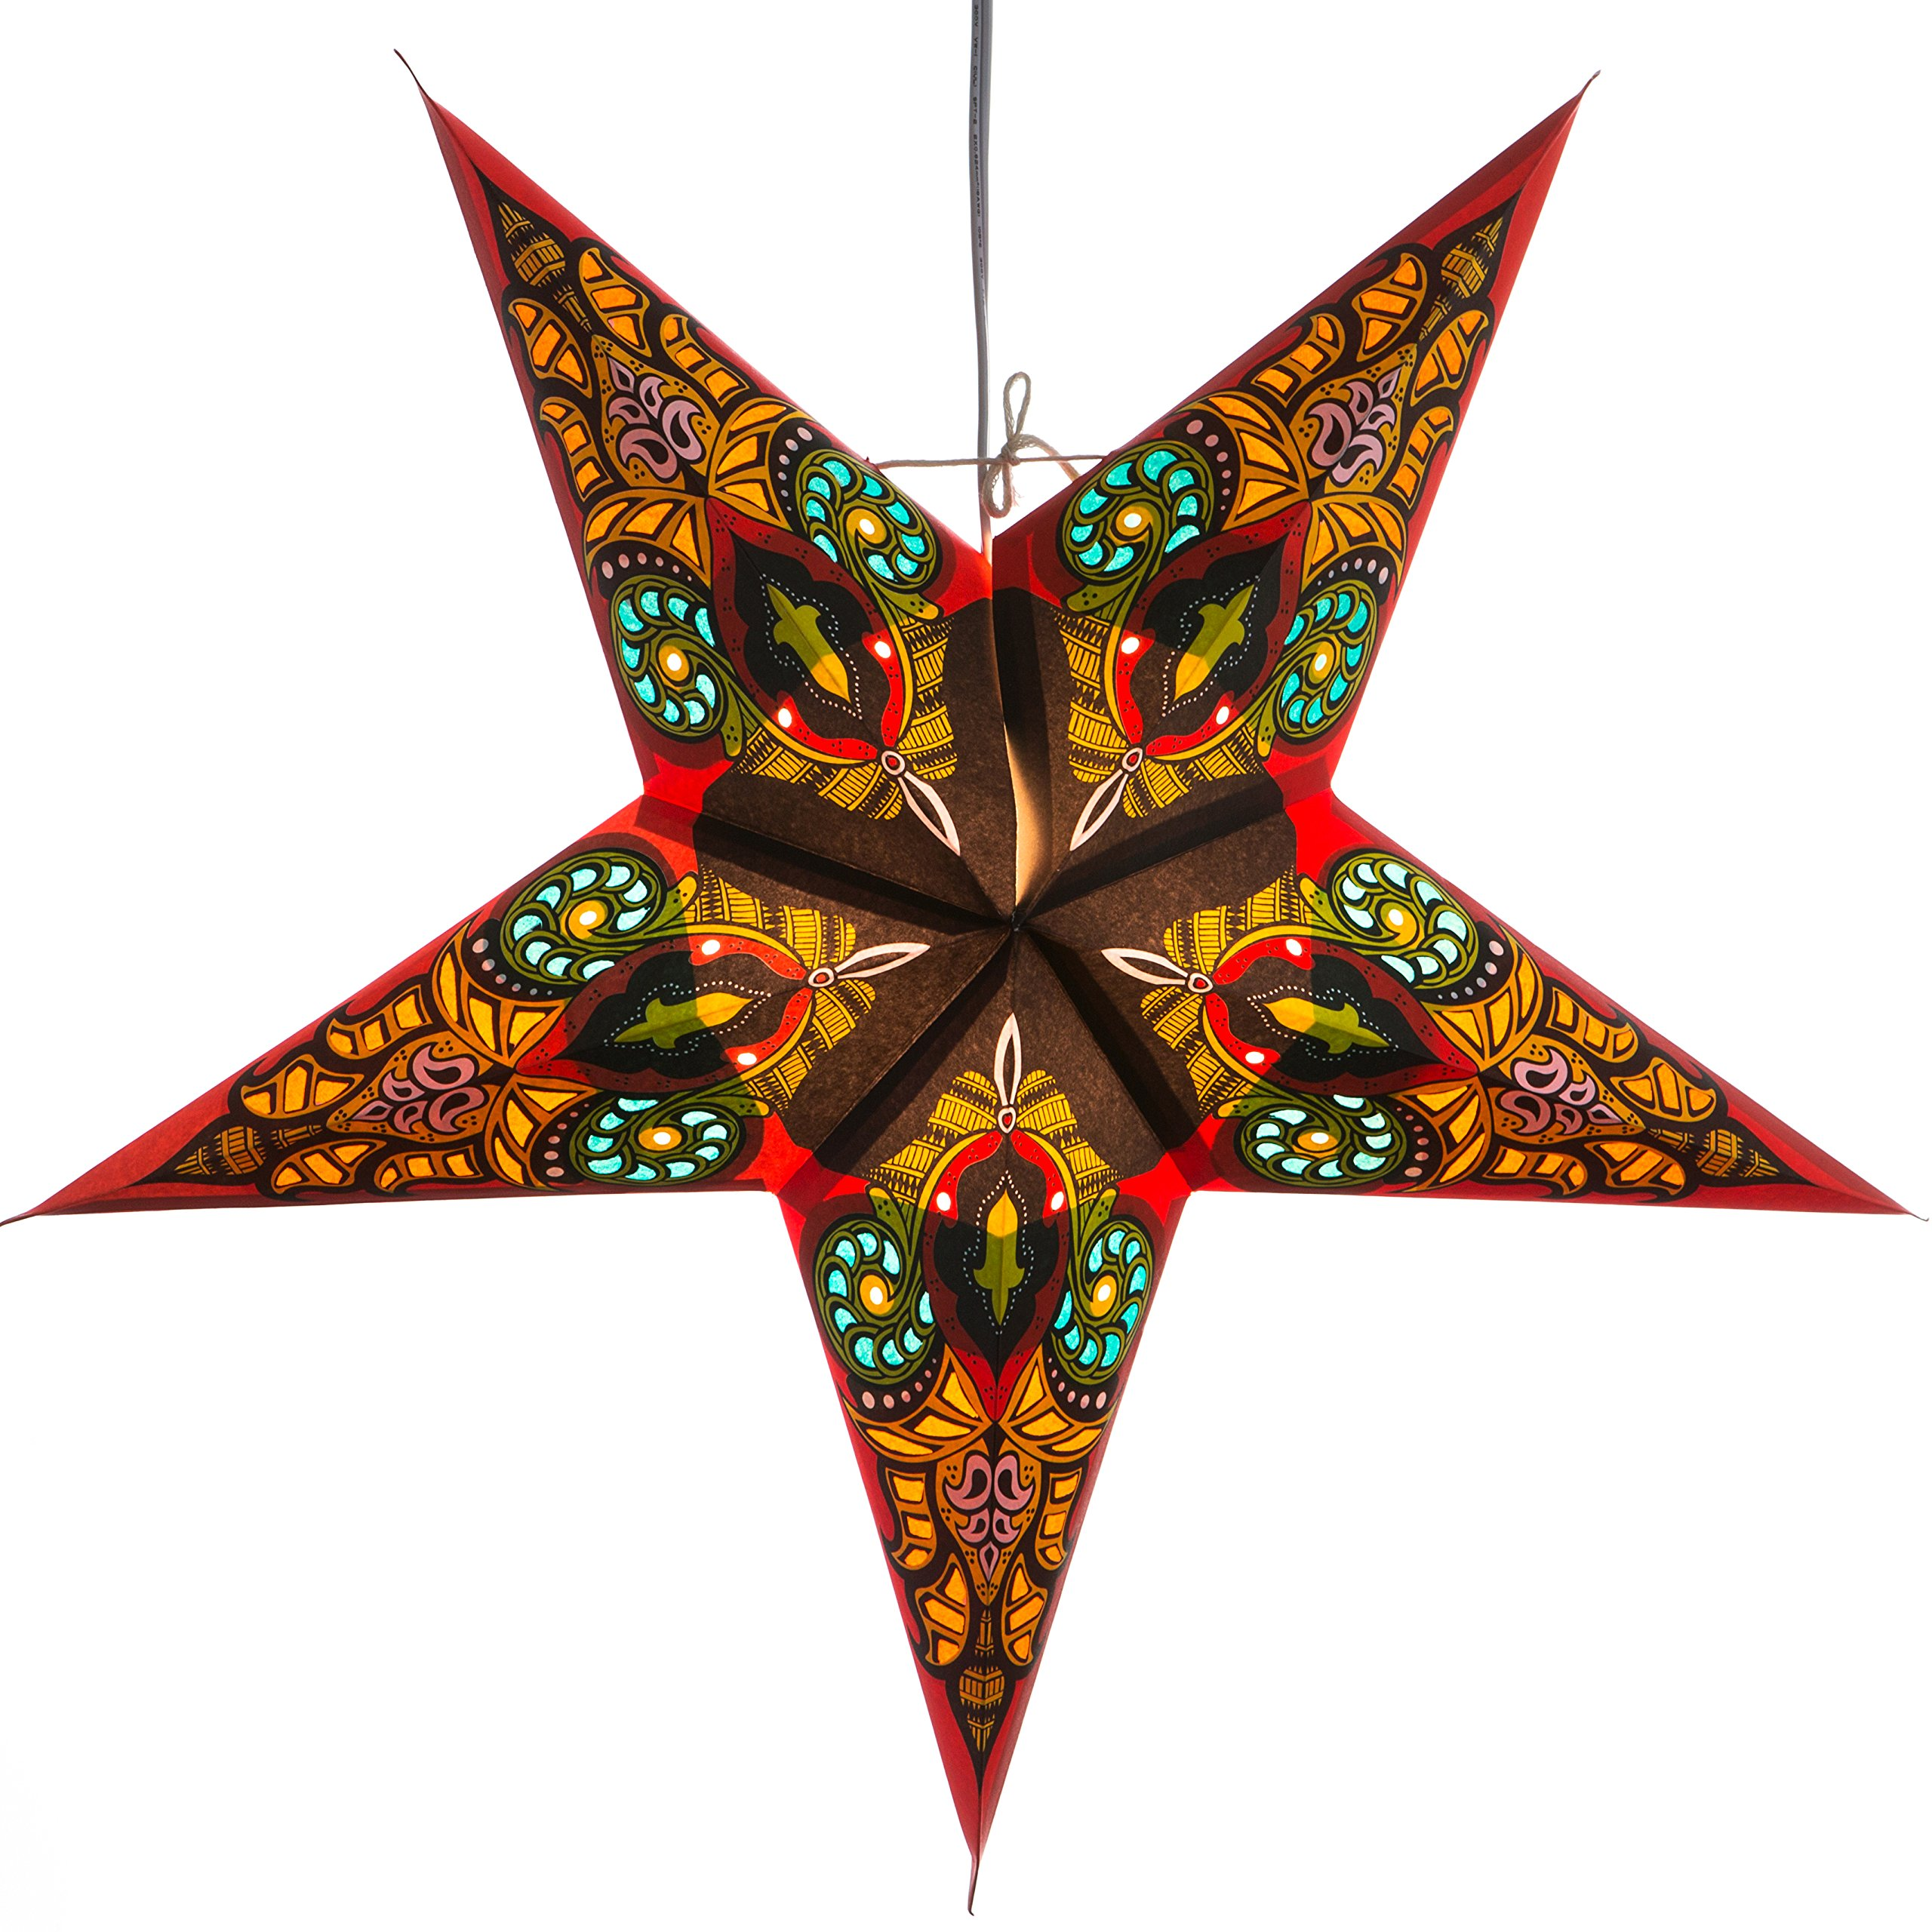 Red Mango Paper Star Lantern with 12 Foot Power Cord Included by Hometown Evolution, Inc. (Image #2)